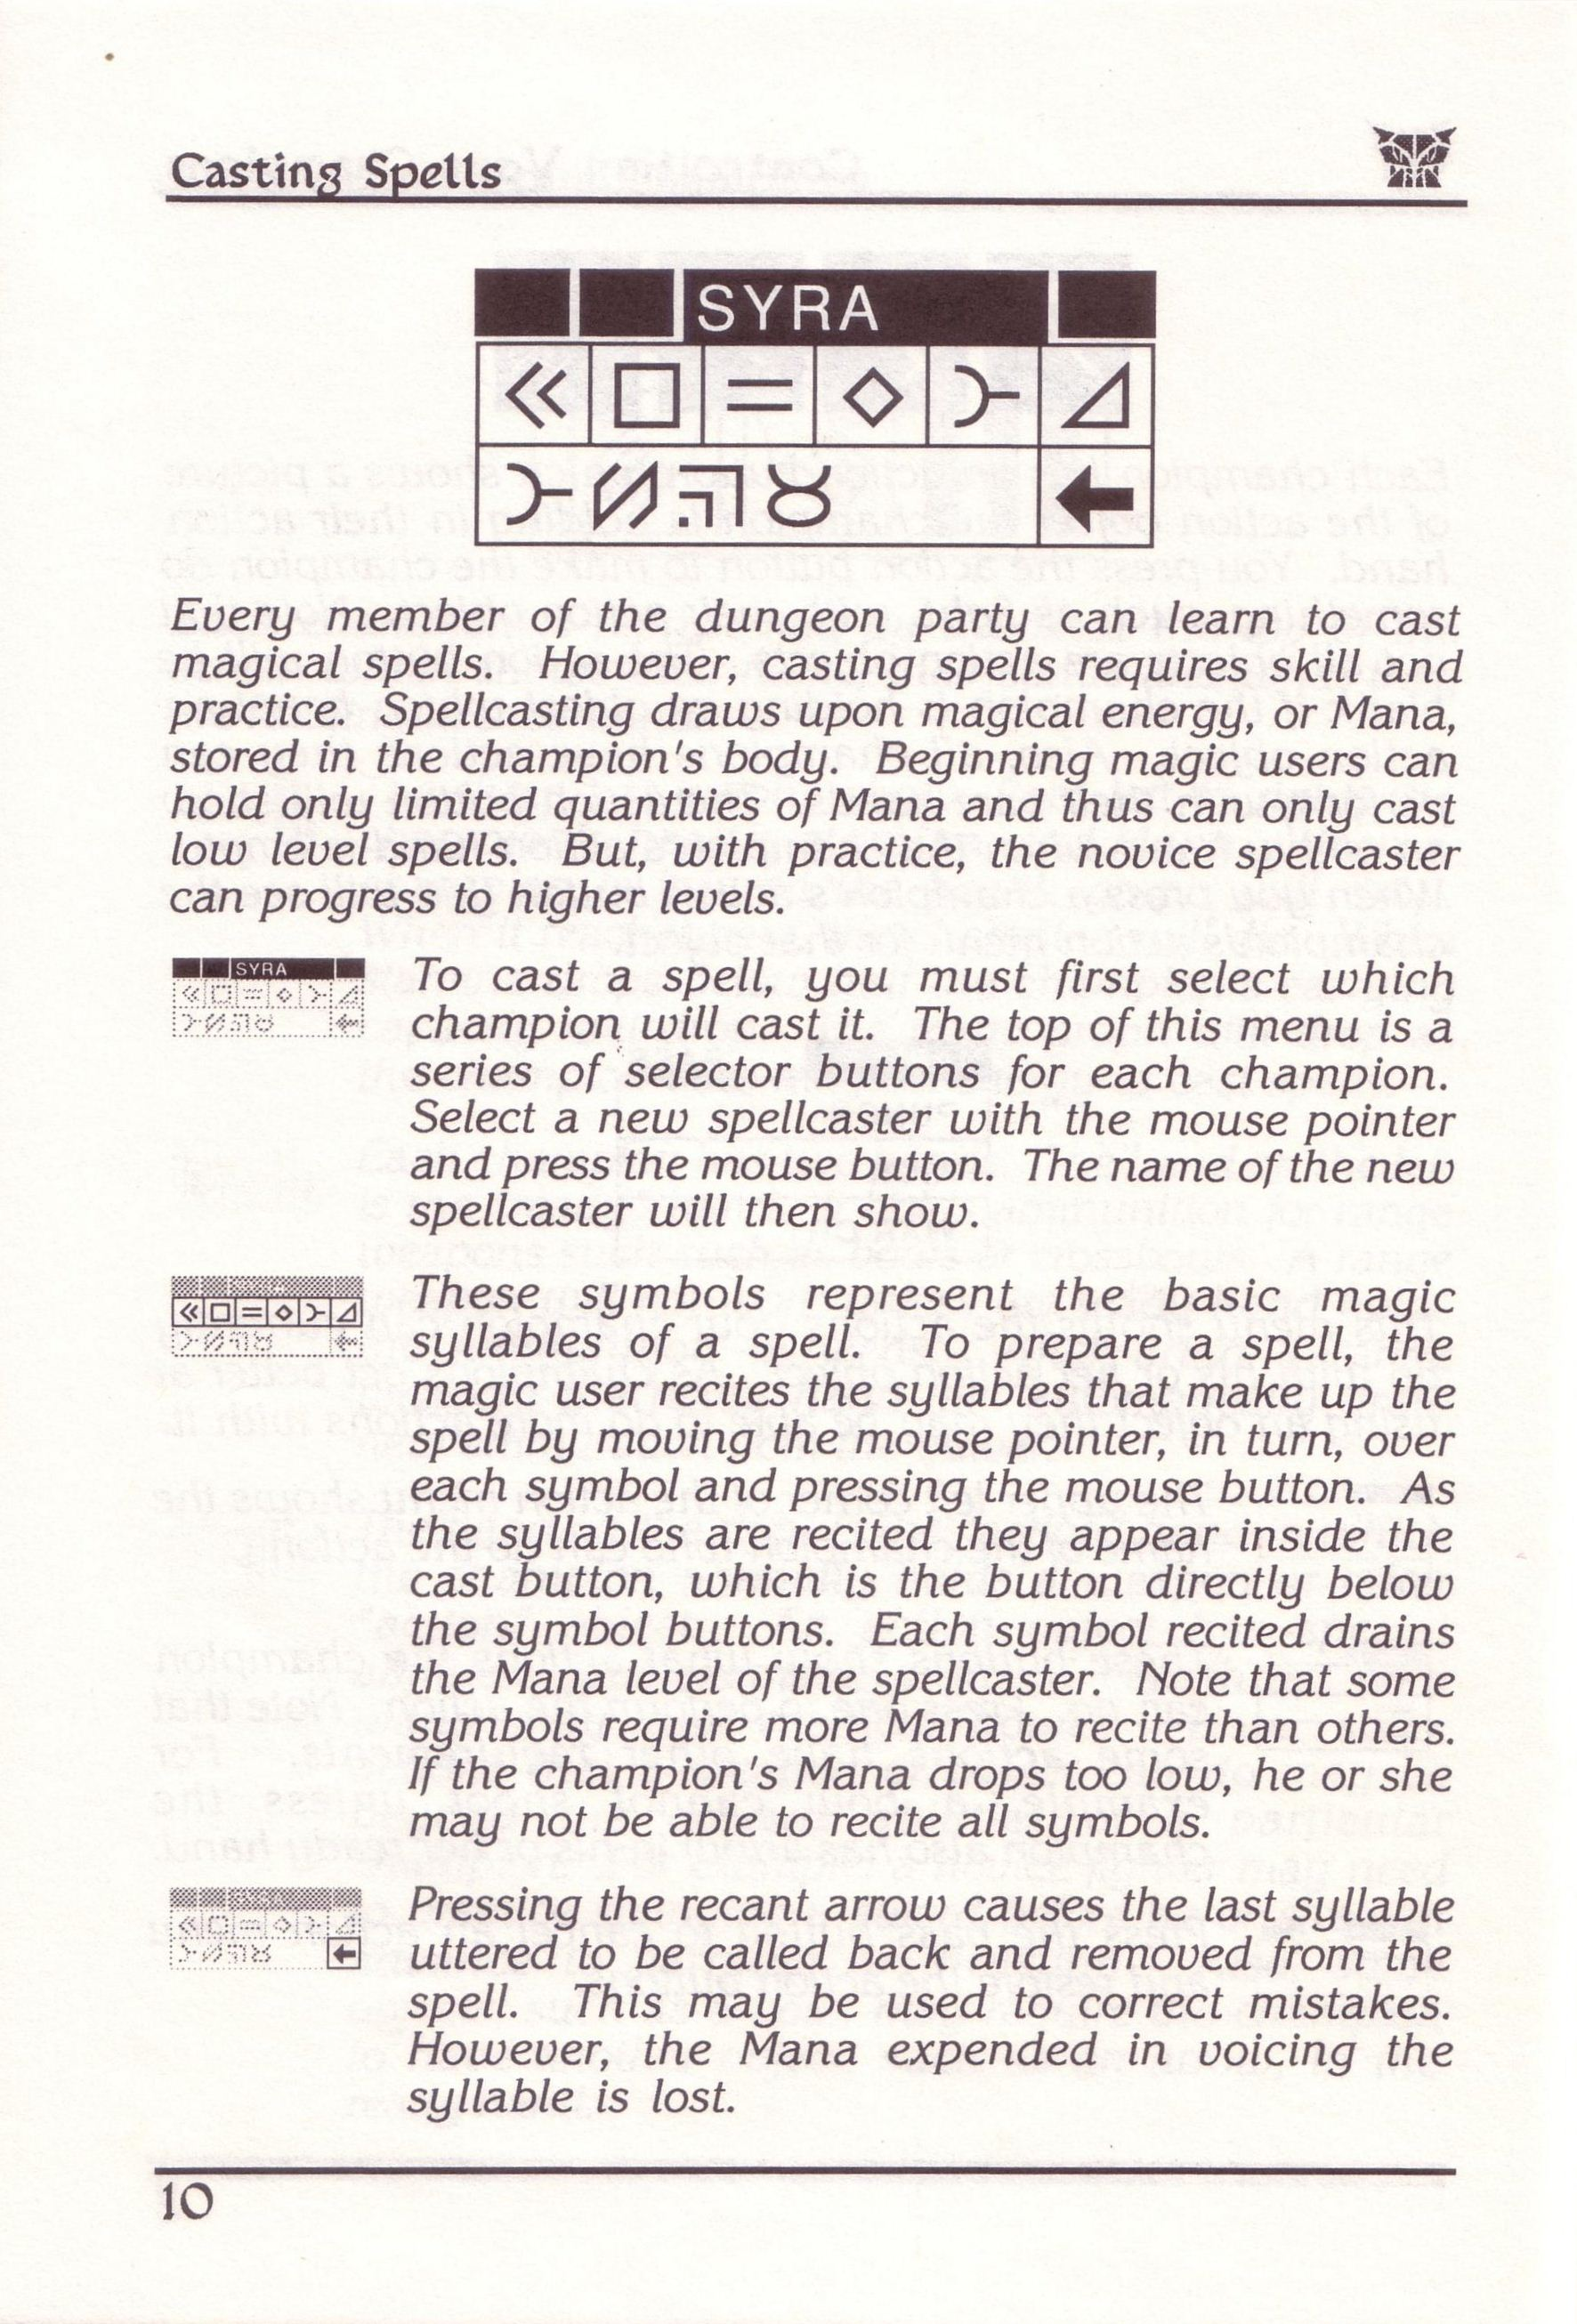 Dungeon Master for PC with FTL Sound Adapter (US Release) - Manual Page 34